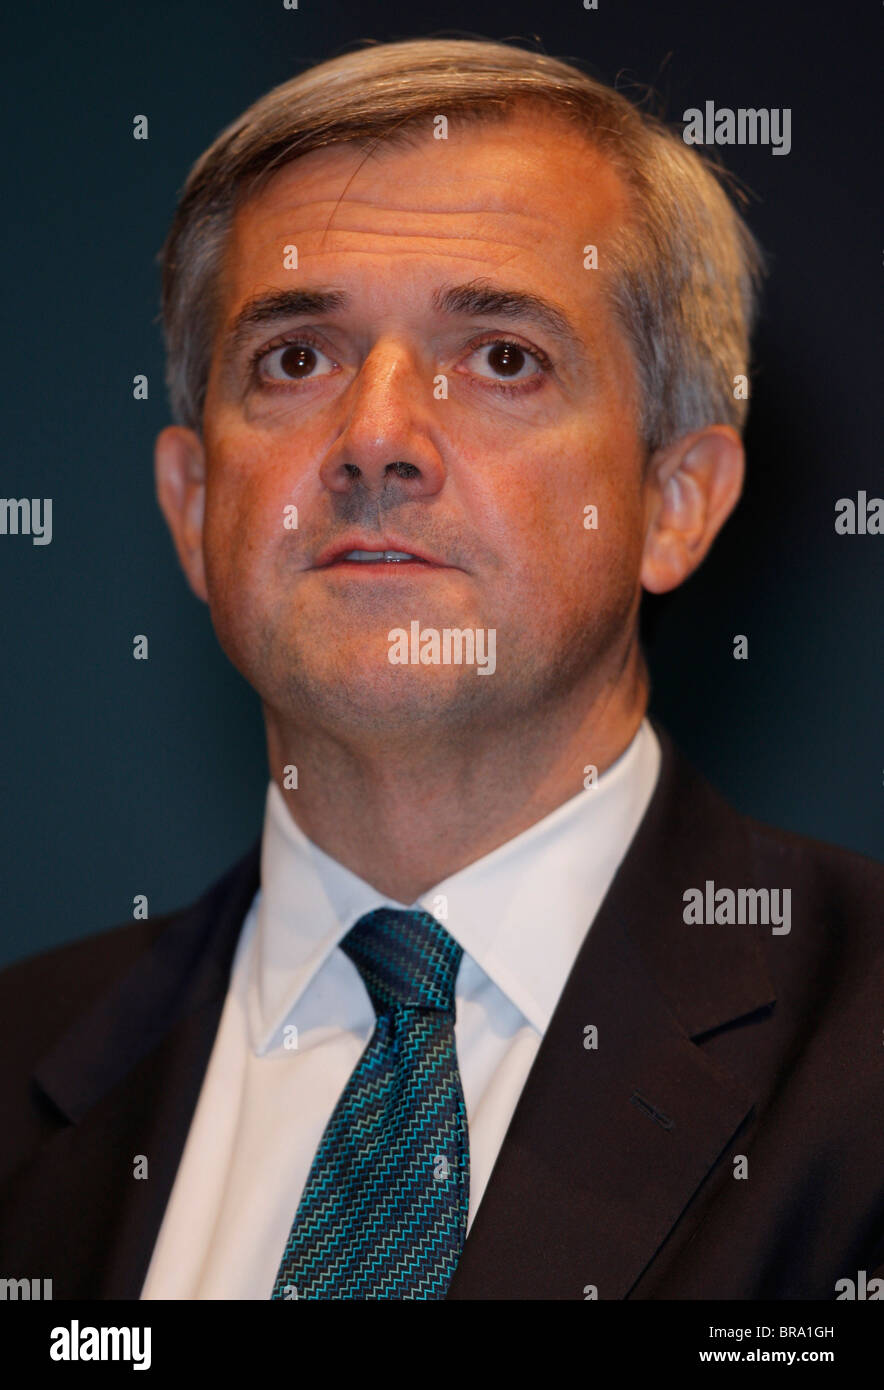 CHRIS HUHNE MP SECRETARY OF STATE FOR ENERGY 21 September 2010 THE ACC LIVERPOOL ENGLAND - Stock Image